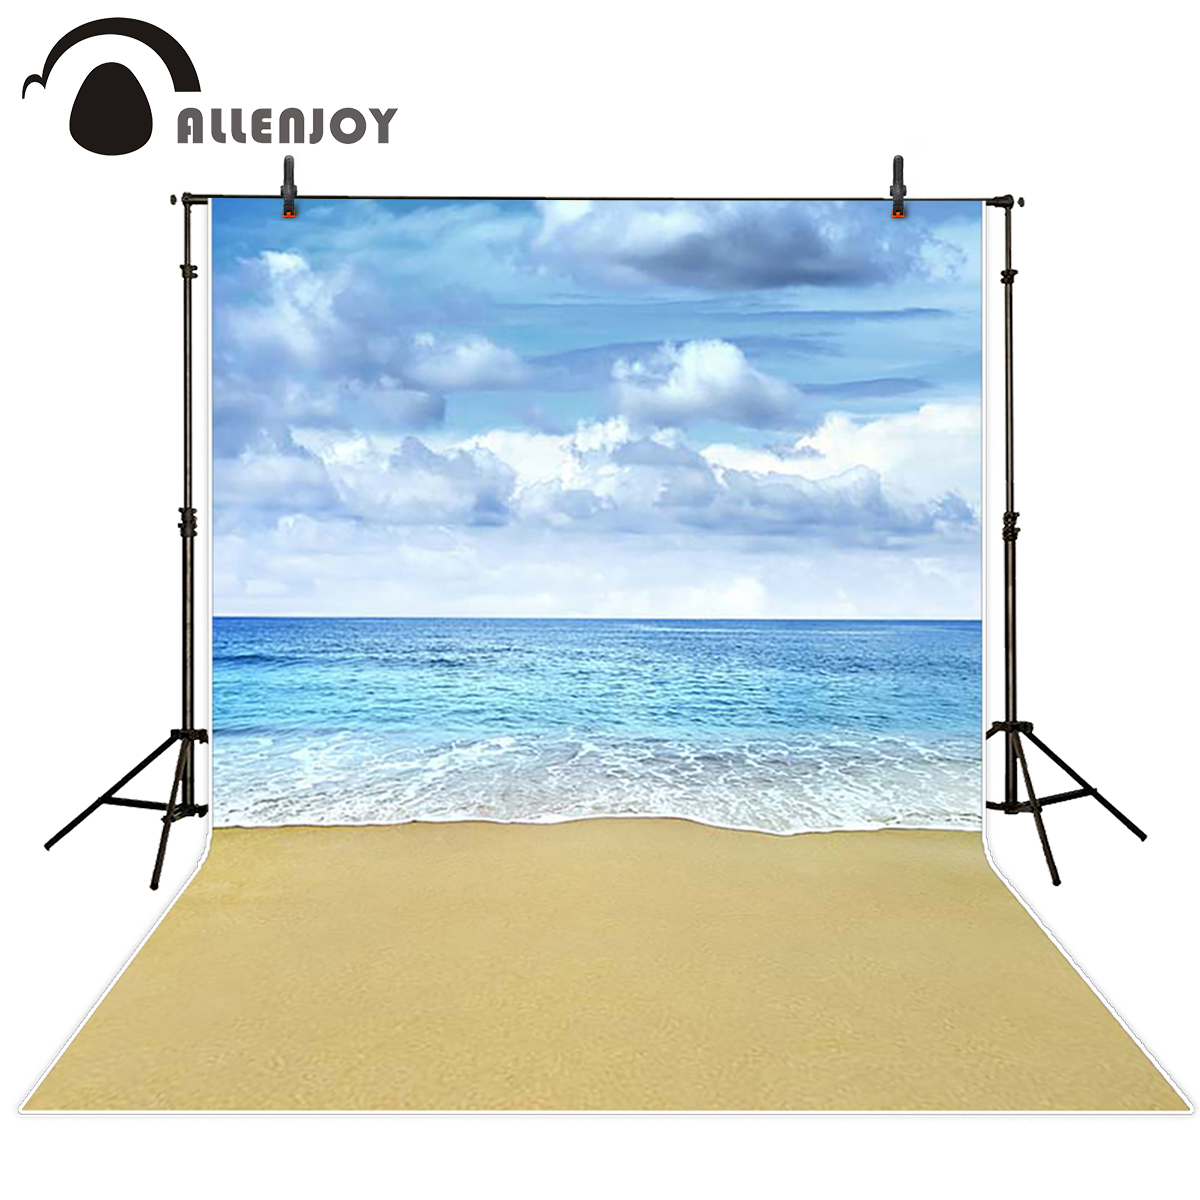 Allenjoy scenic Photo background Cloudy sea beach with gray clouds seaside photography backdrops photo backdrop fabric kate backdrop for photography beach ocean wedding series background photo studio seaside scenic backdrops